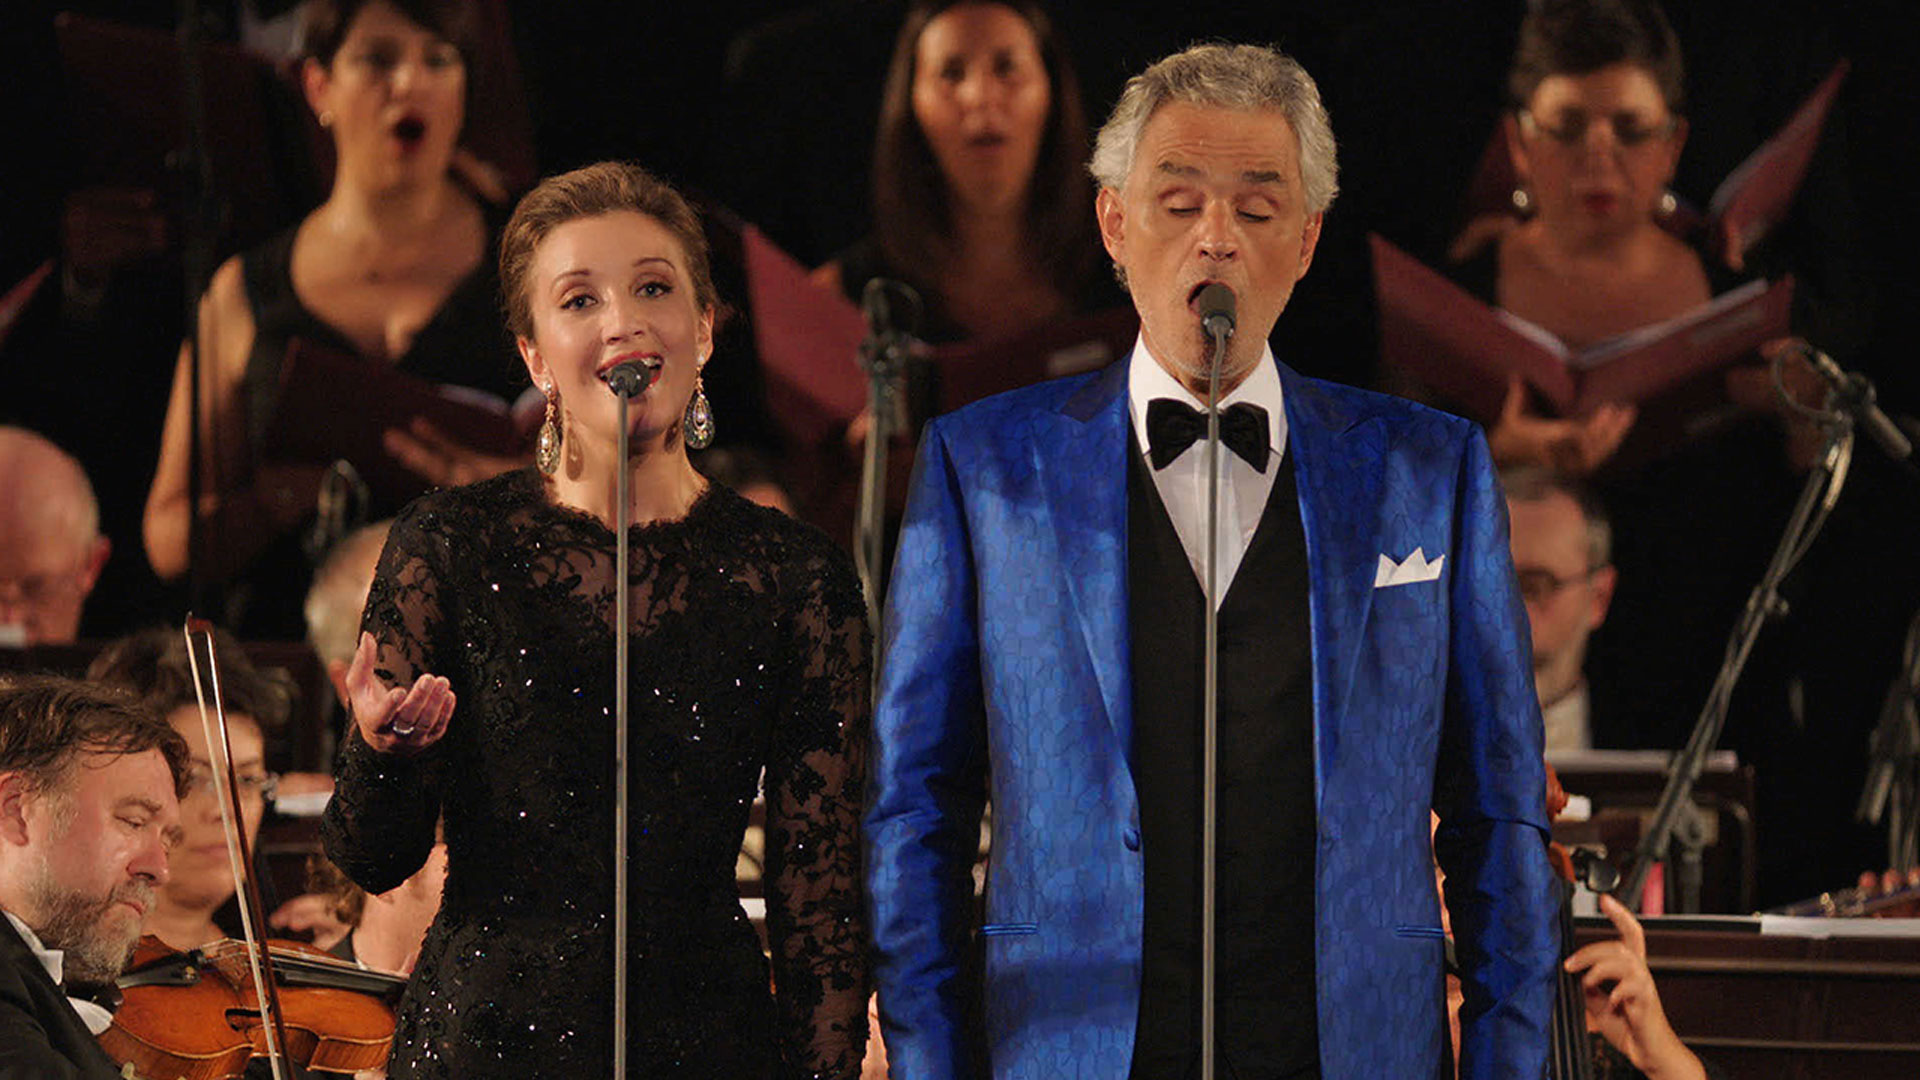 andrea bocelli landmarks live in concert about great performances pbs. Black Bedroom Furniture Sets. Home Design Ideas